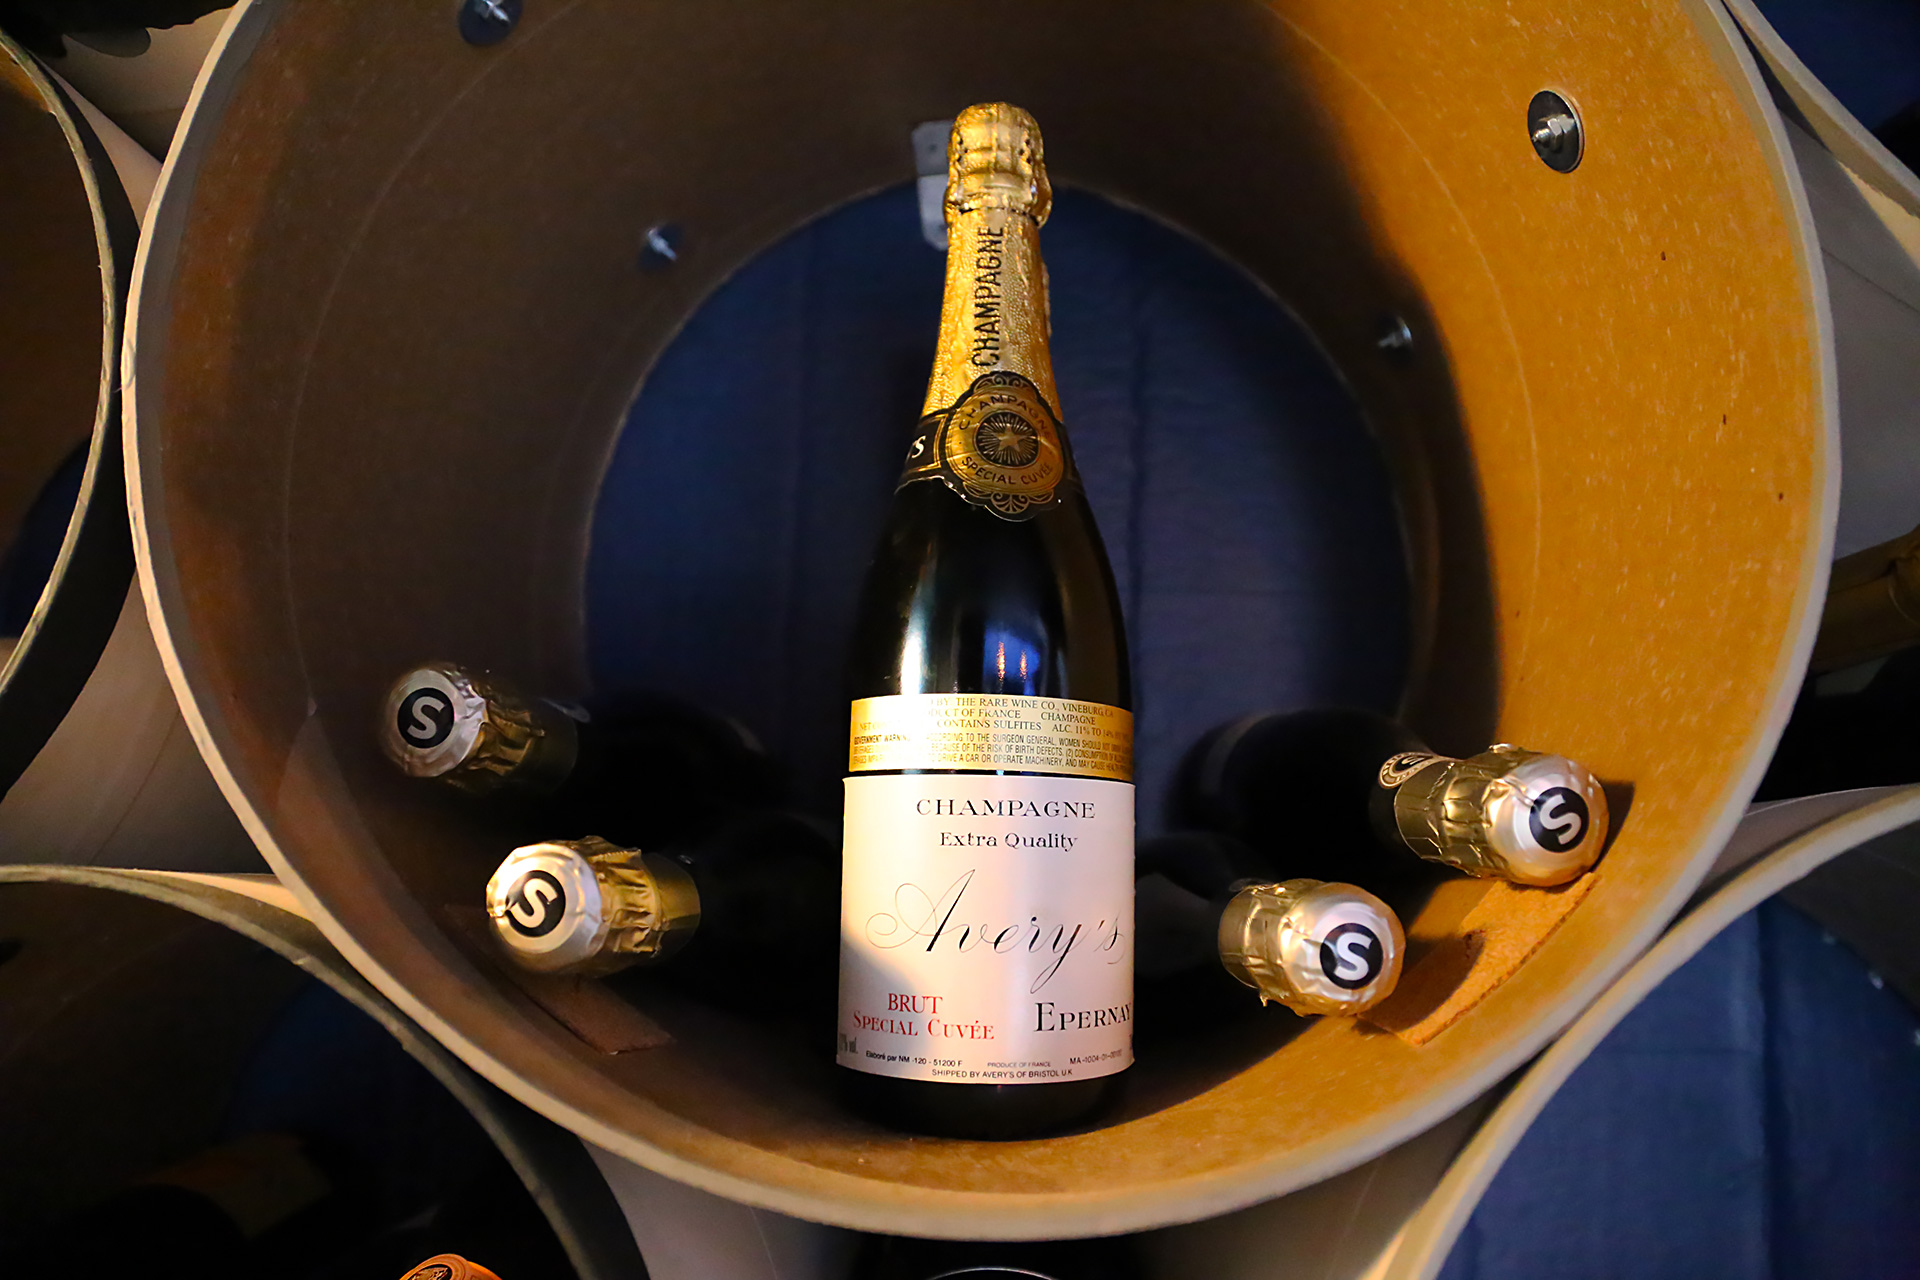 Champagne is the other main beverage specialty at Avery